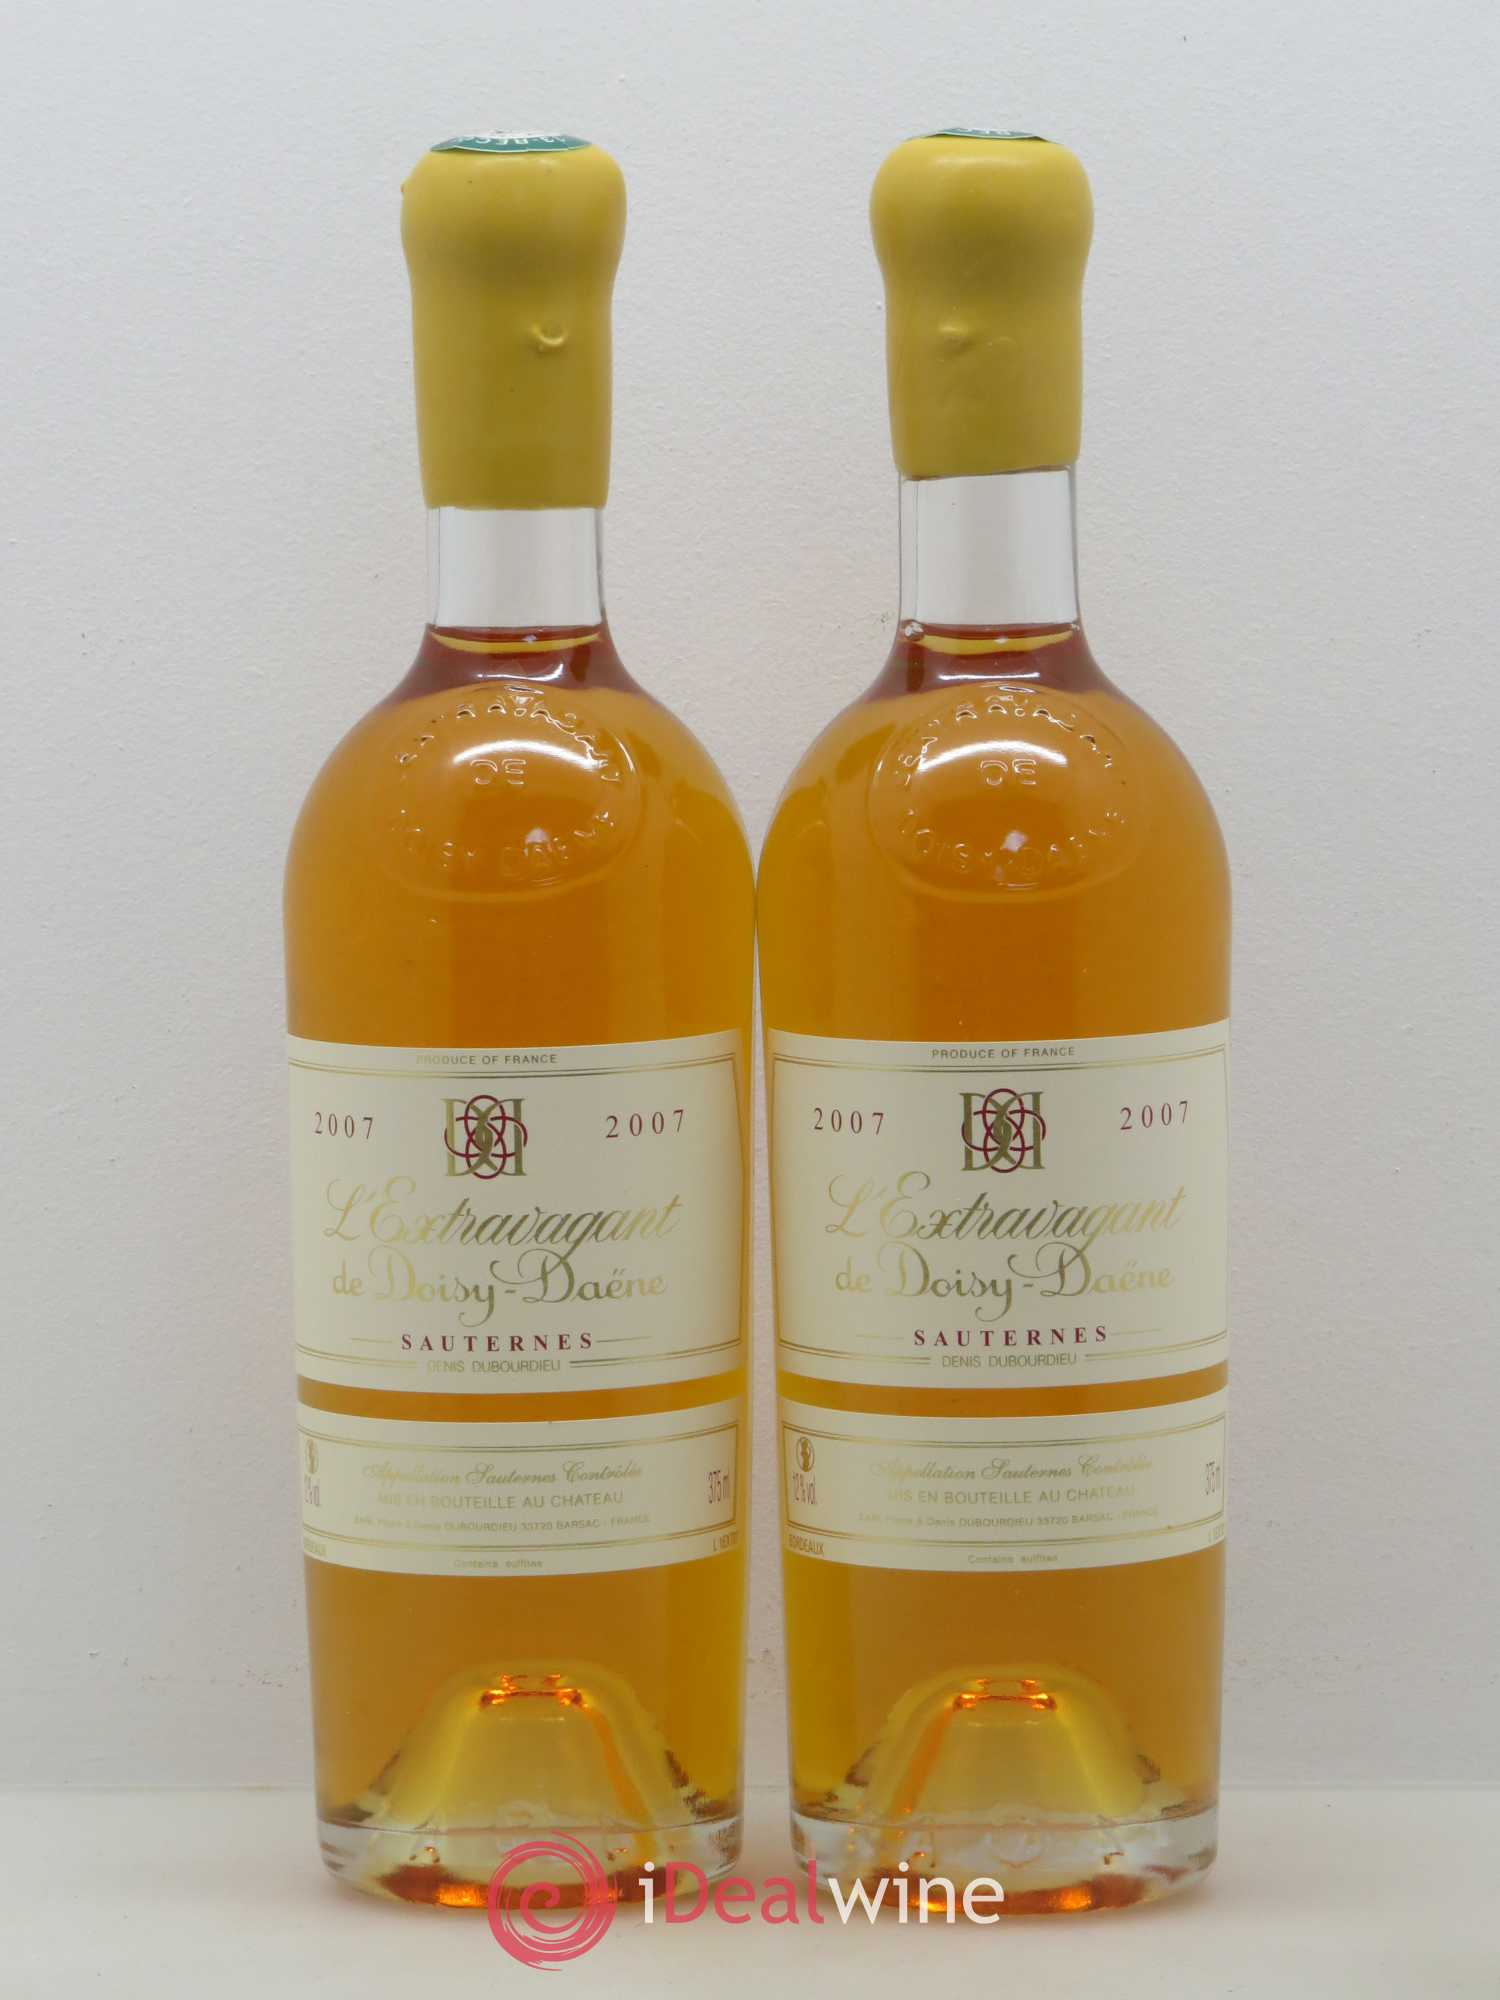 L'Extravagant de Doisy Daëne  2007 - Lot of 2 Half-bottles